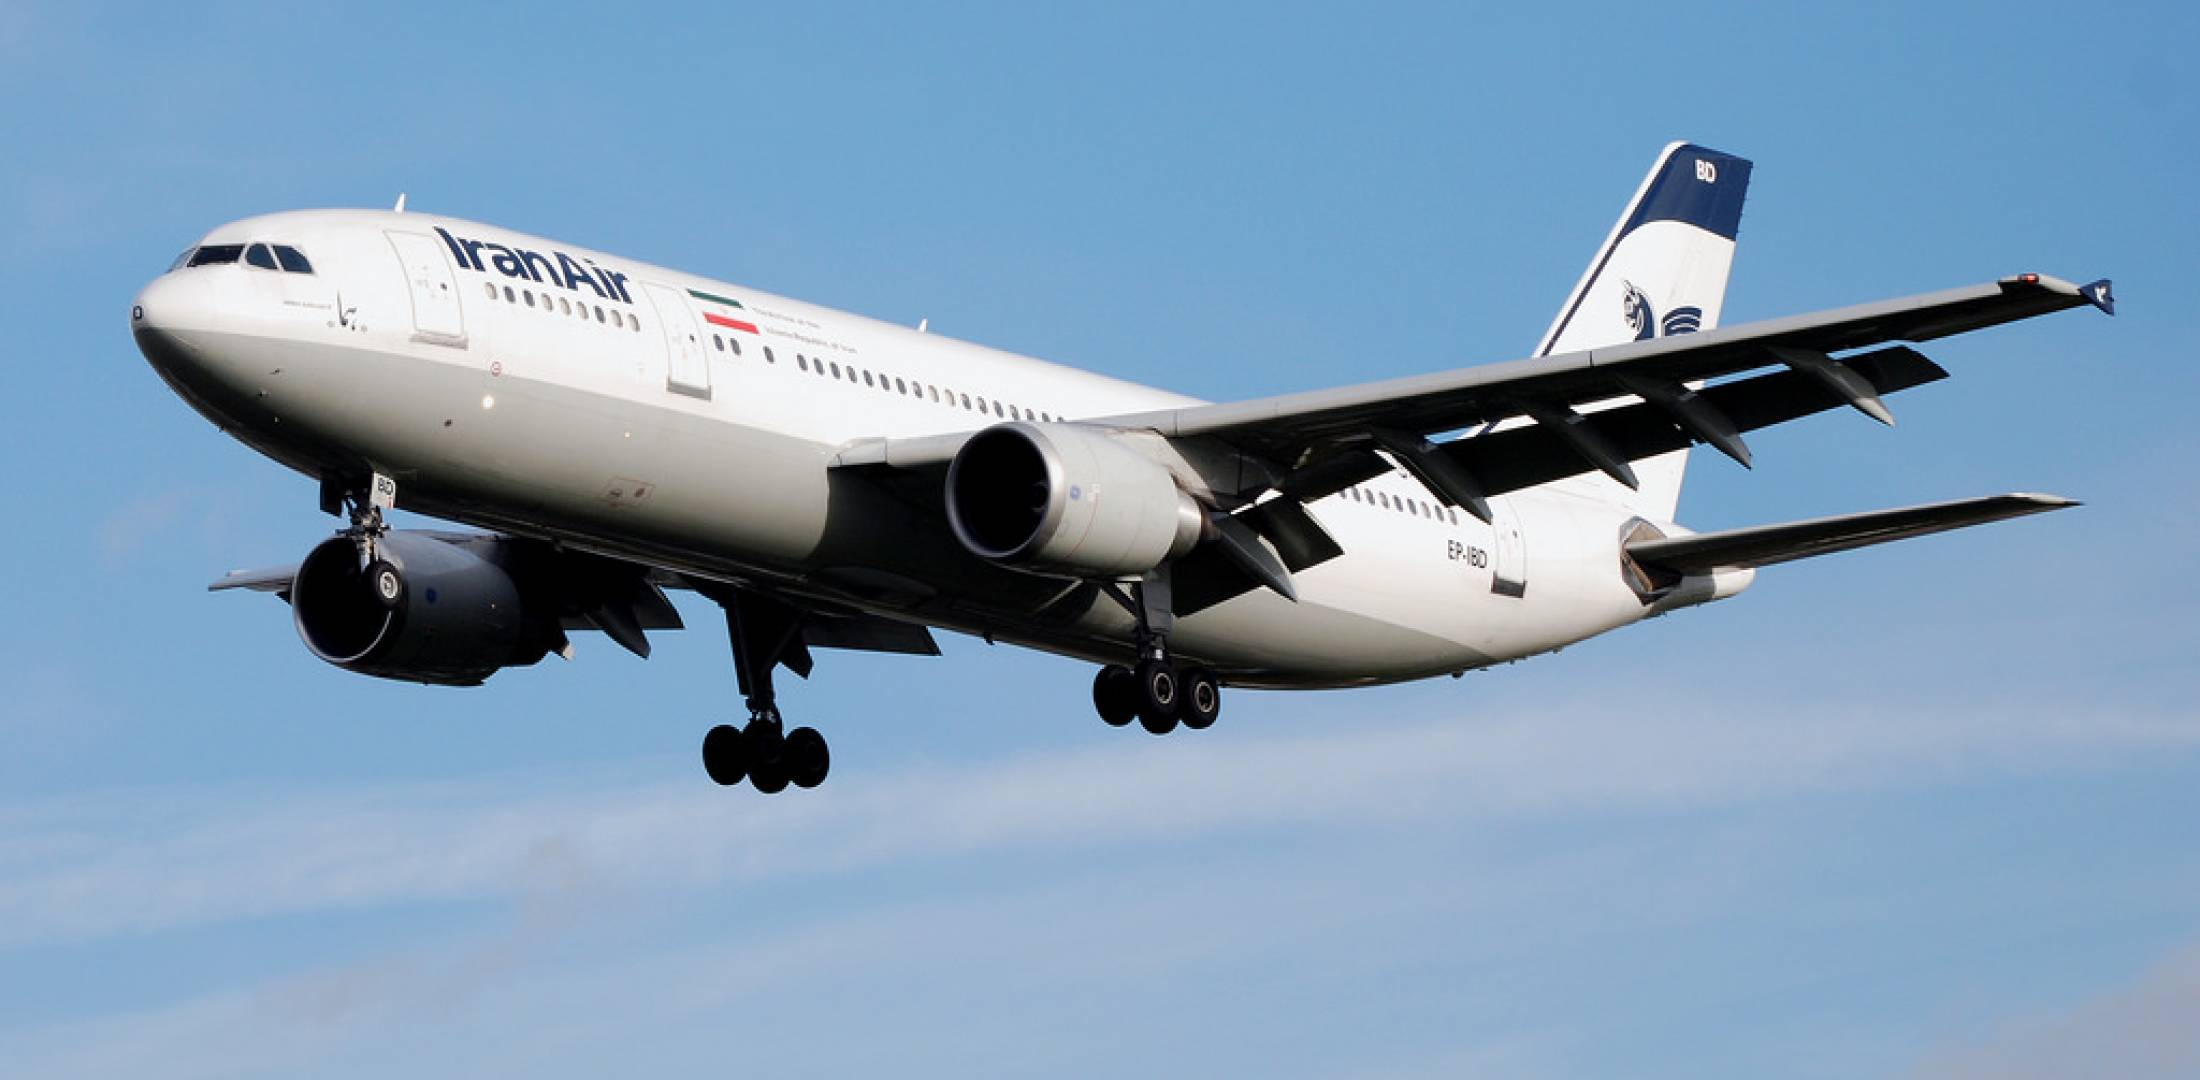 U s grants licenses to airbus and boeing for iran air sales air transport news aviation - Iran air office in london ...